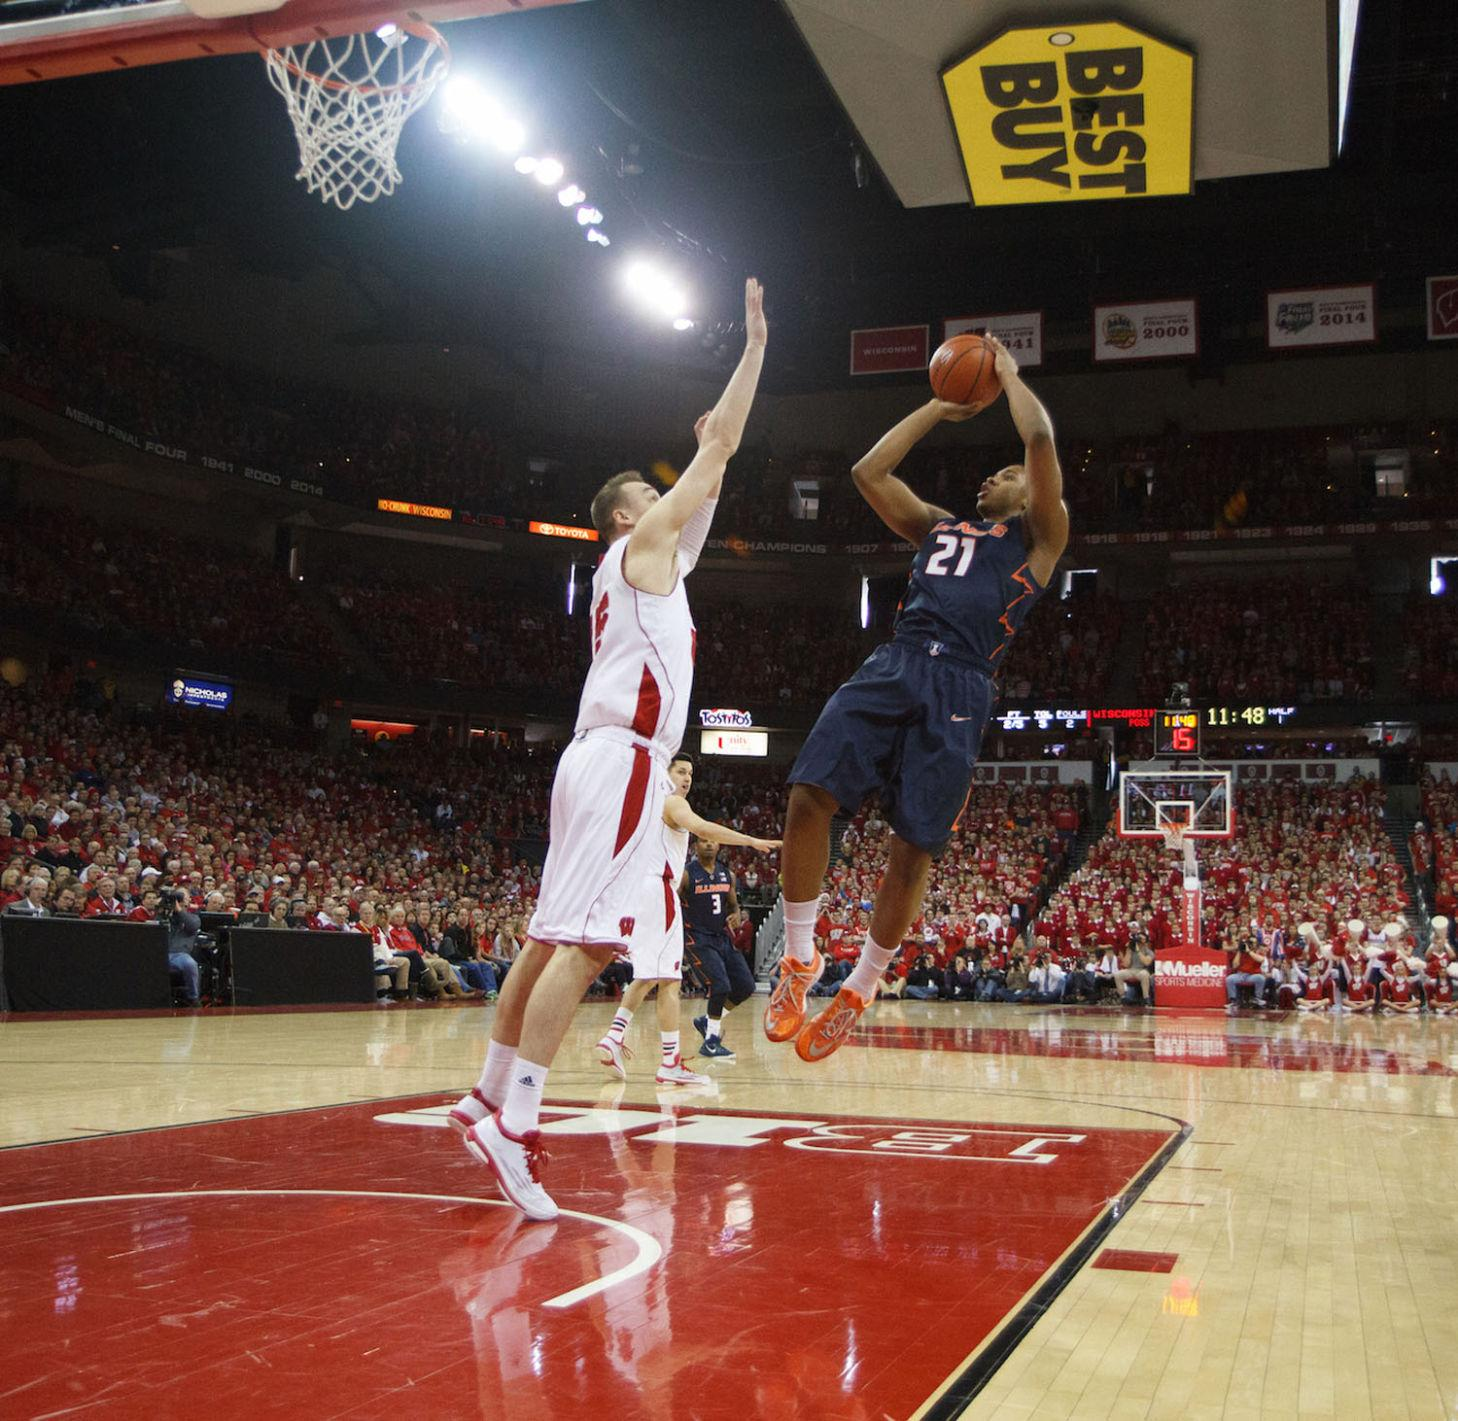 They+fought+valiantly%2C+but+the+Illini+didn%E2%80%99t+have+enough+in+the+tank+to+take+down+No.+5+Wisconsin.